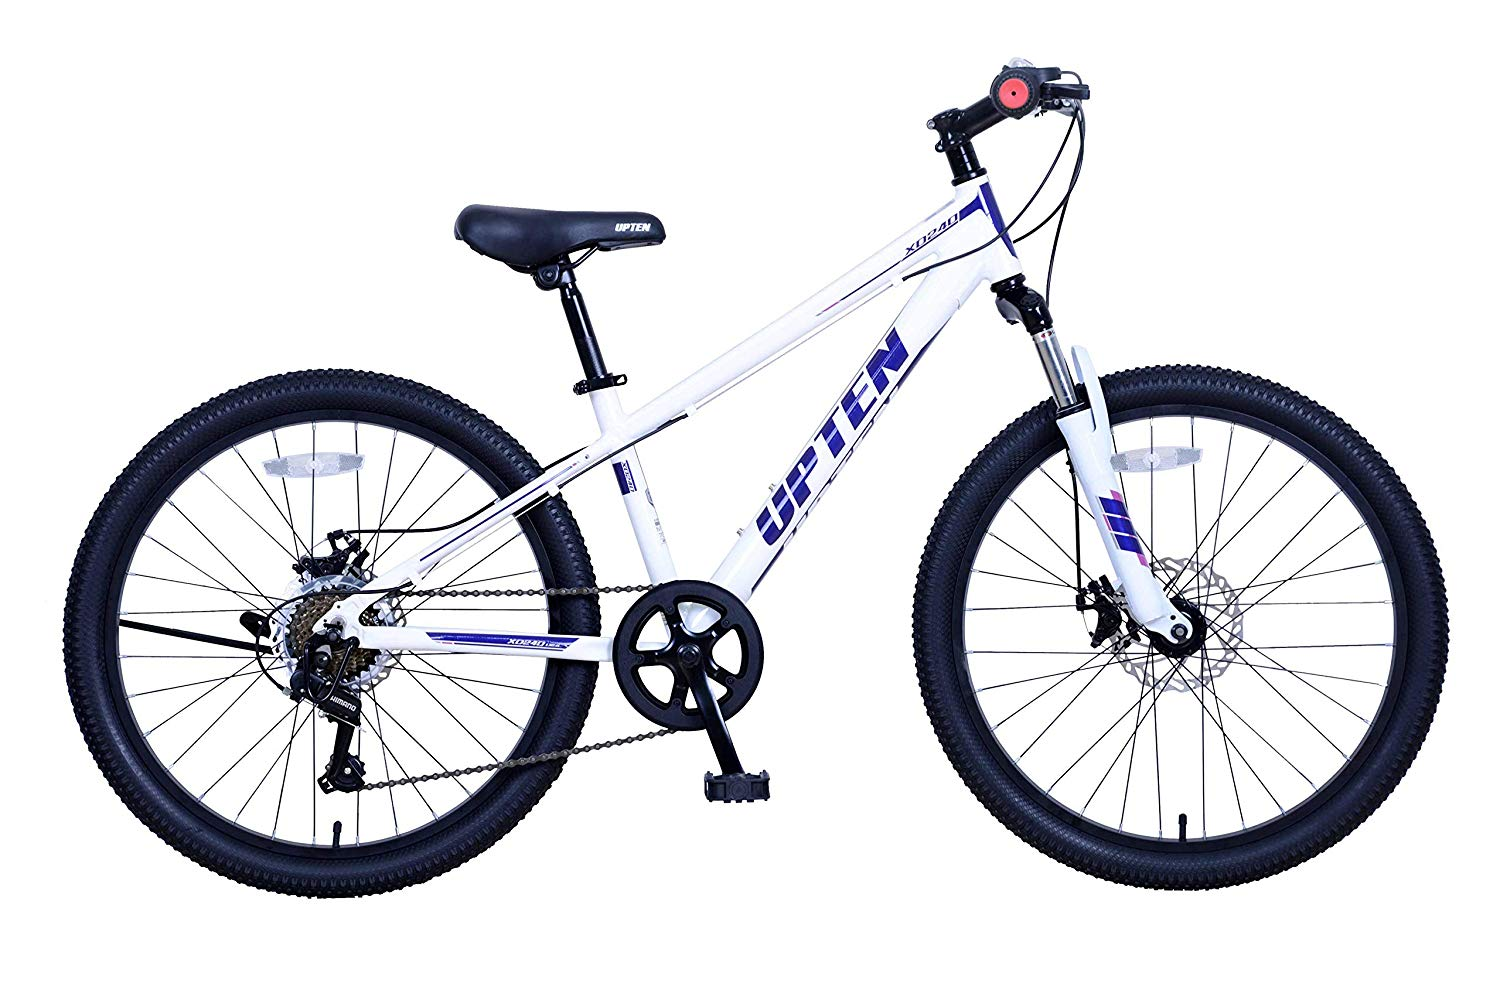 UPTEN Edifier Mountain Bike 24-Inch White